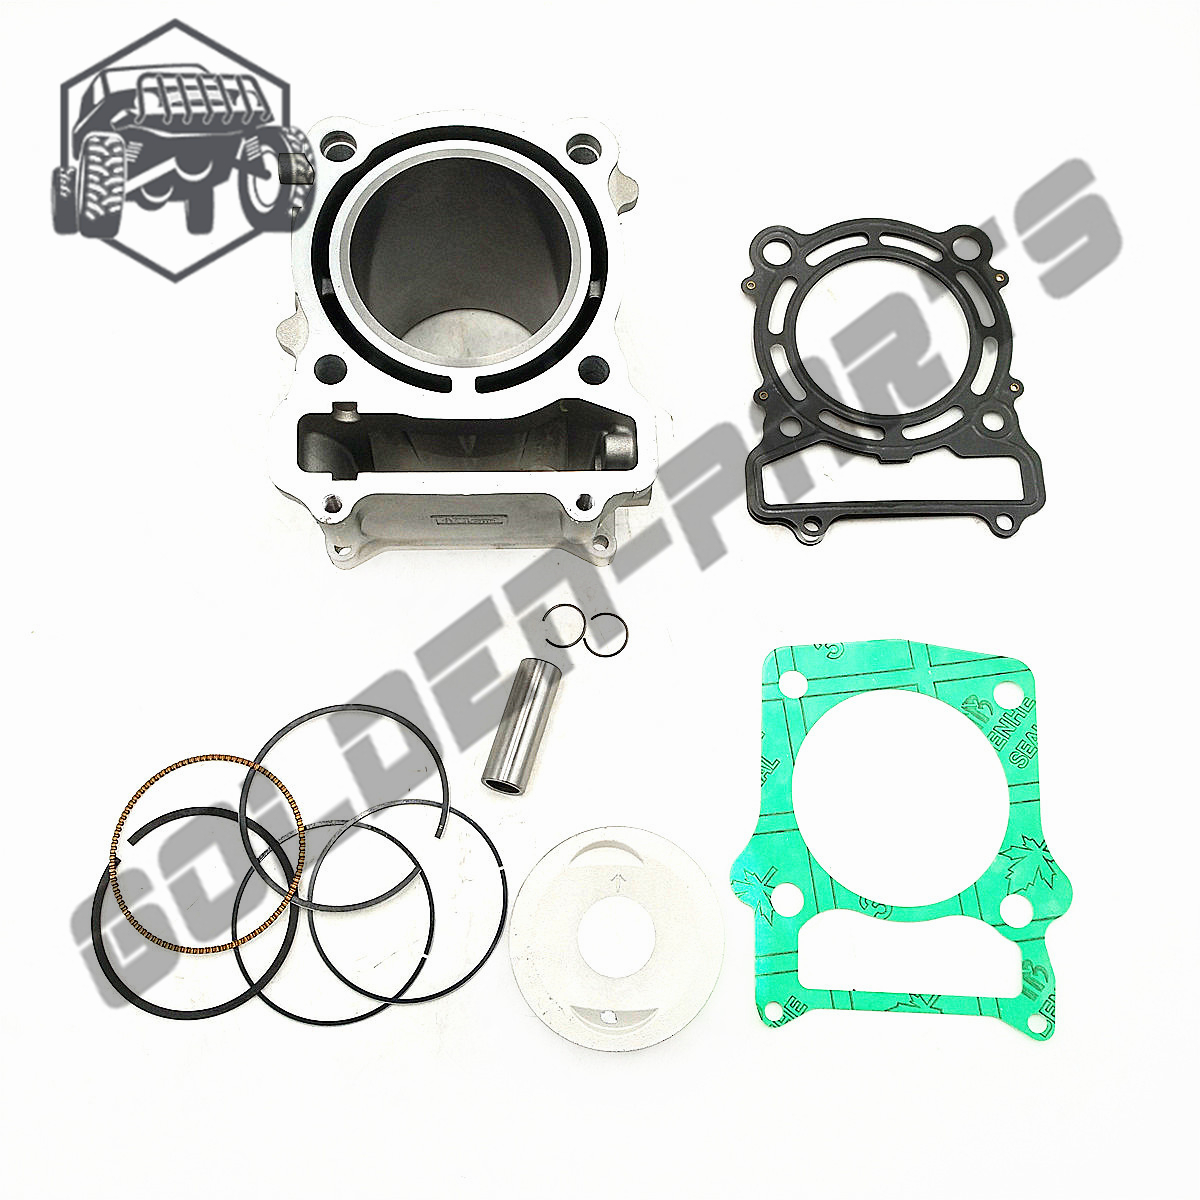 KUOQIAN HISUN Parts HS500cc HS 500 Cylinder Assy Piston Kit Rings For Hisun 500cc HS500 ATV UTV Parts High Quality